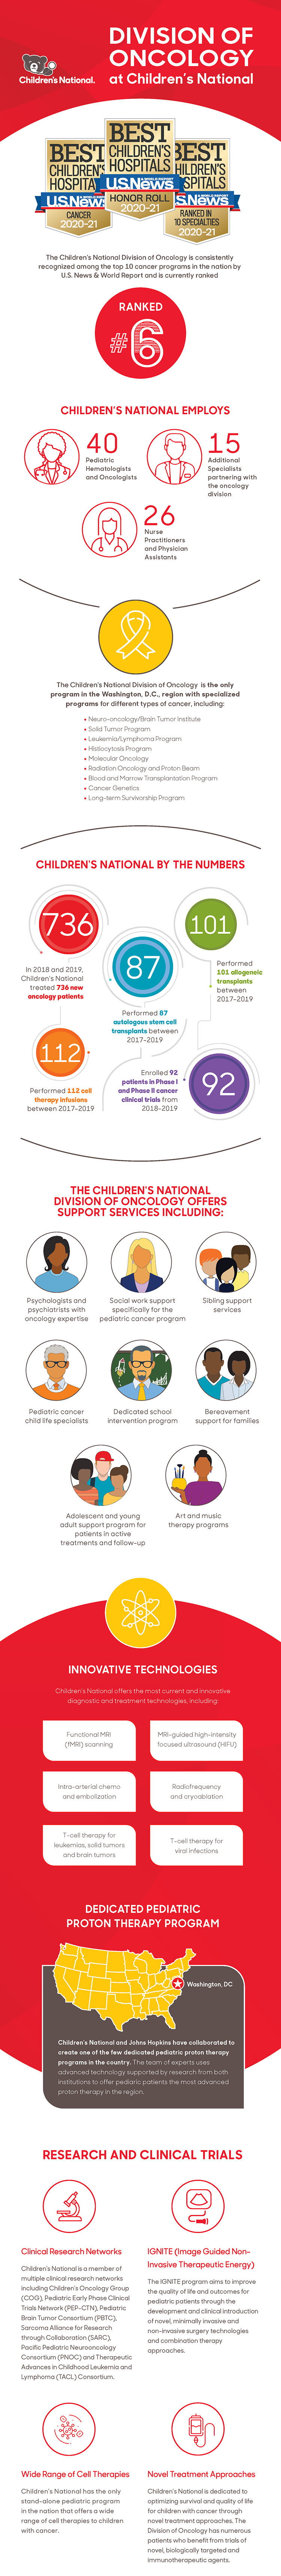 The Children's National Division of Oncology is consistently recognized by U.S. News & World Report as one of the top programs in the nation.